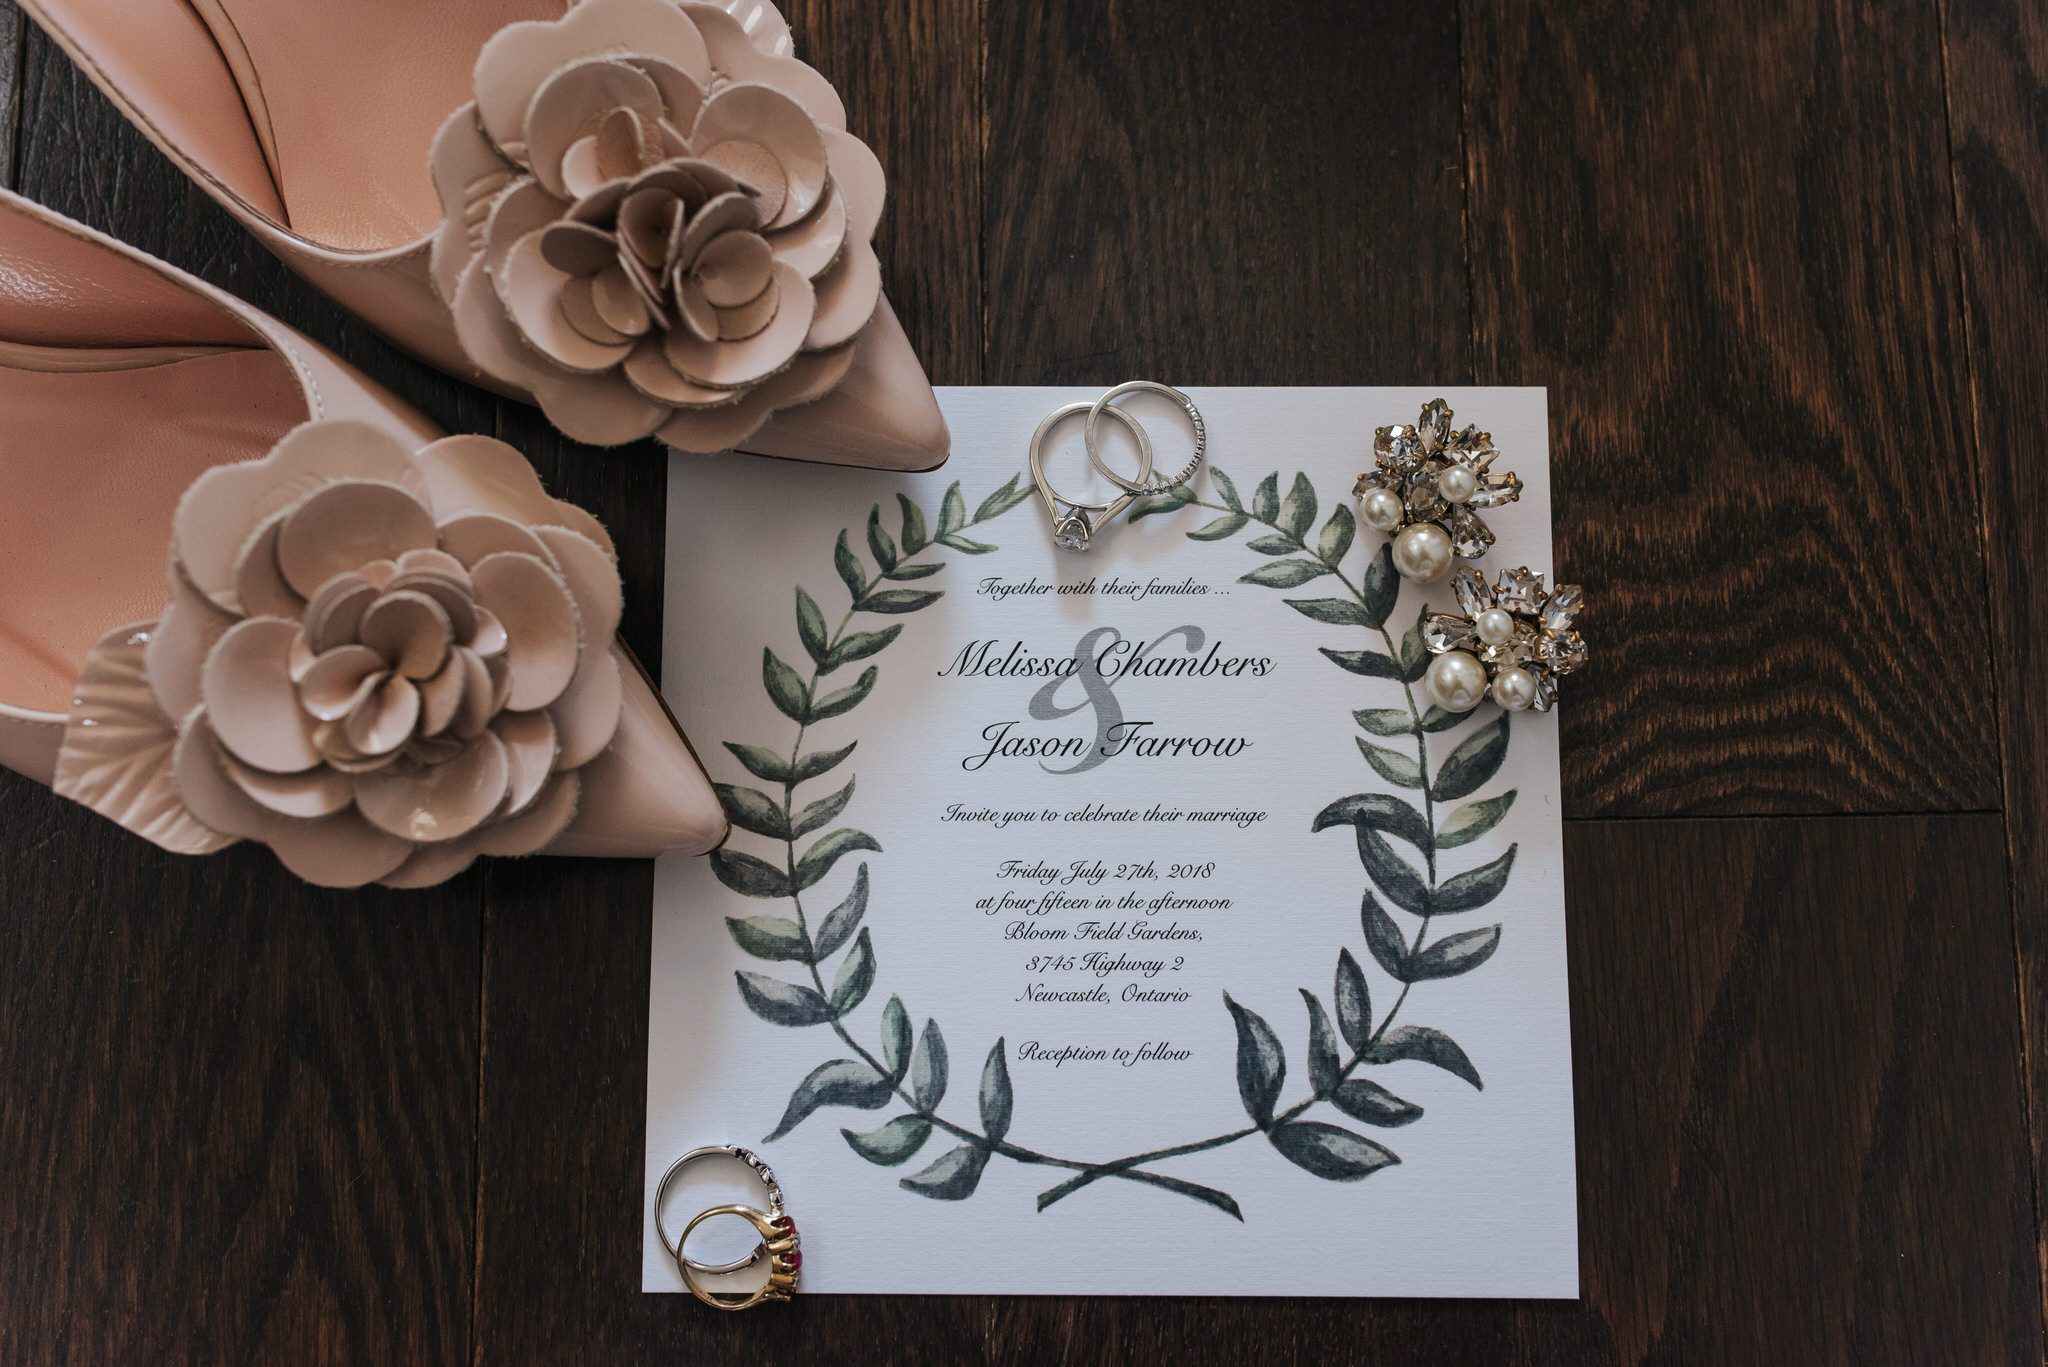 Bloomfield Gardens Wedding - shoes jewelry and invite details